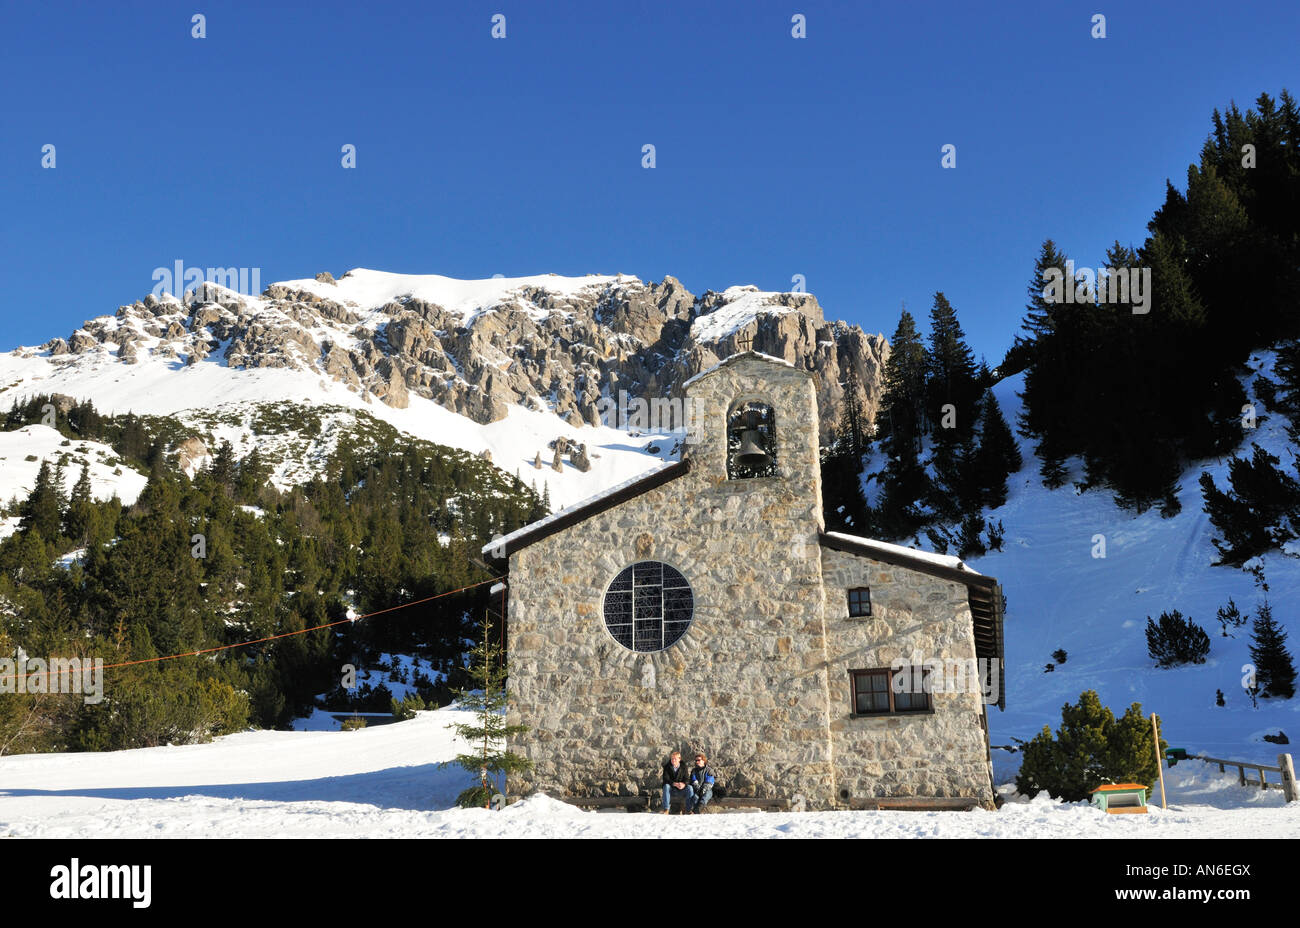 Winter in Malbun - Friedenskapelle with Ochsenkopf, Liechtenstein - Stock Image